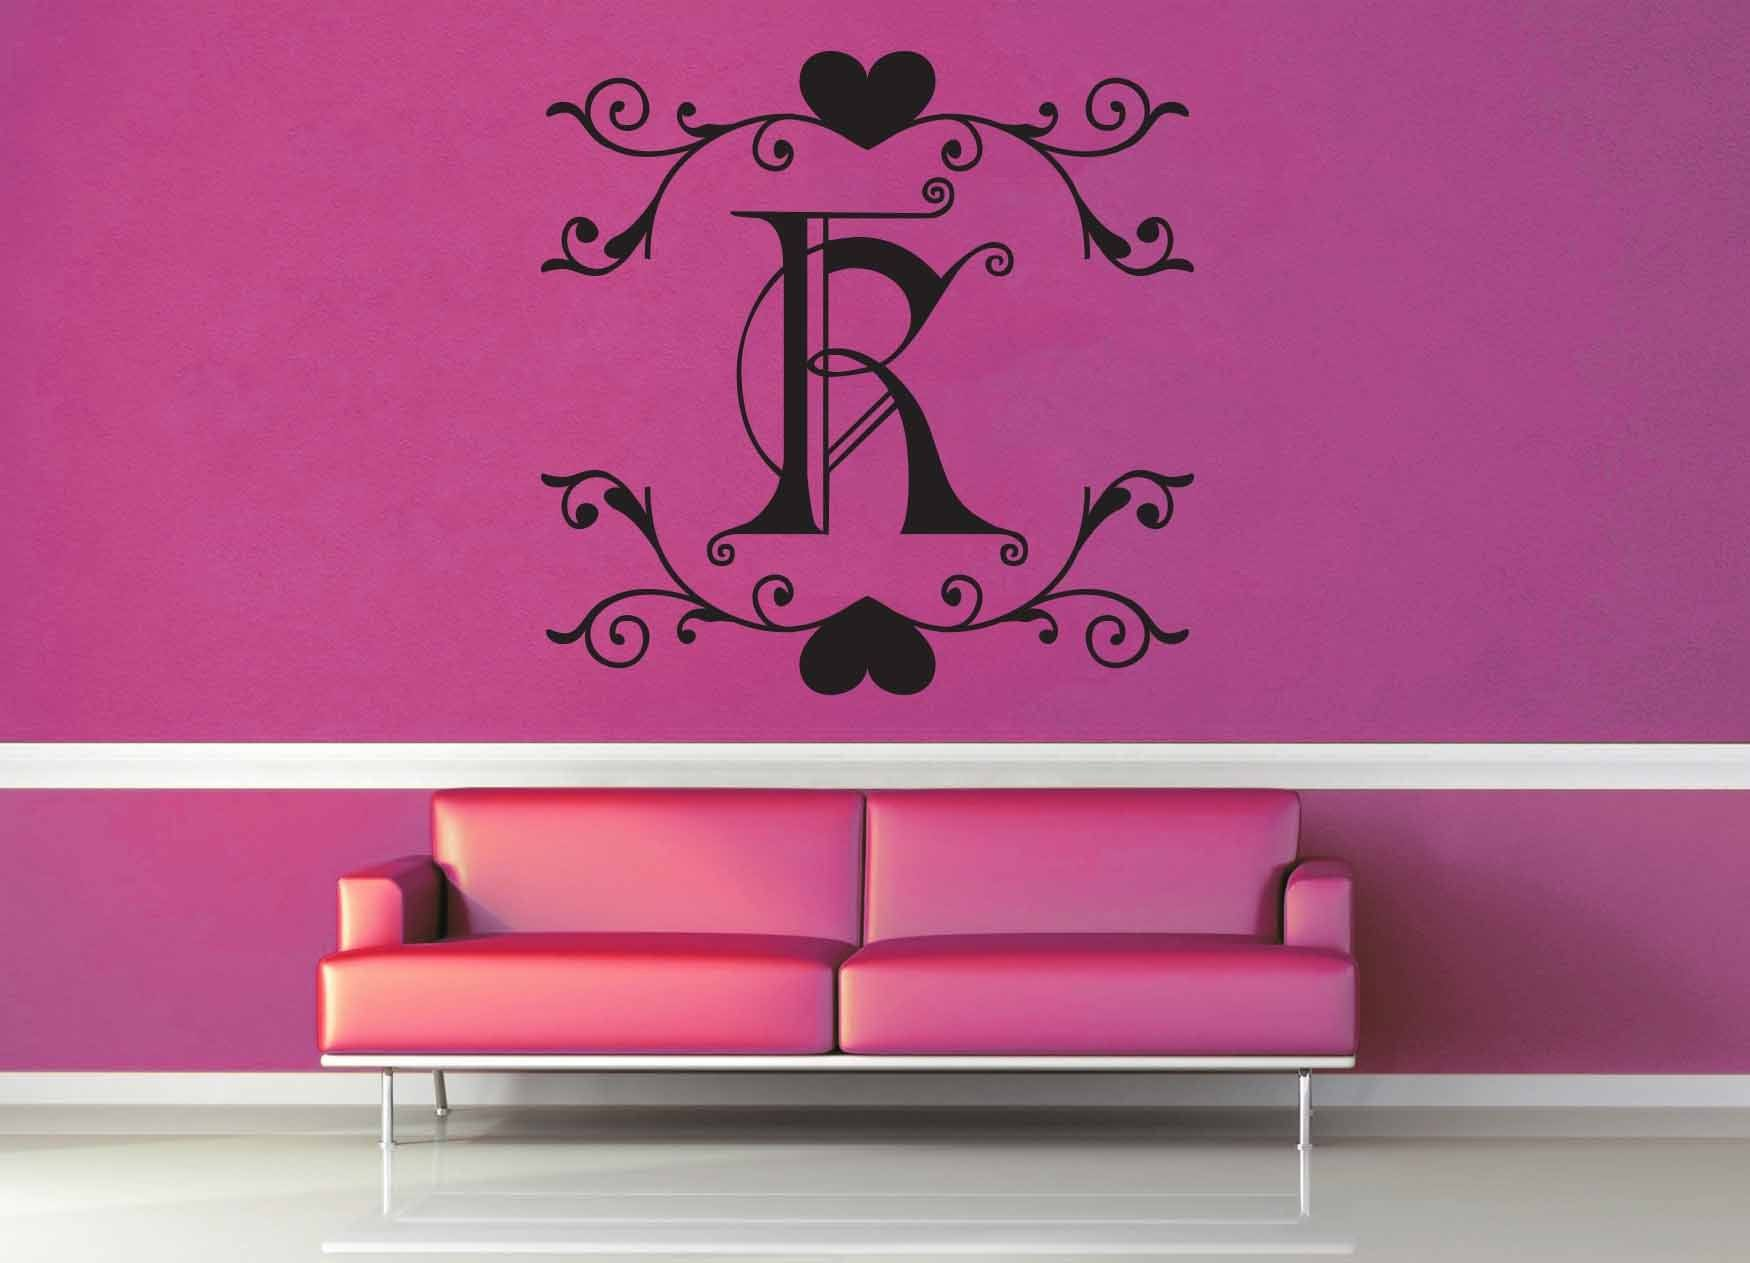 Fantasy Monogram - K - Wall Decal